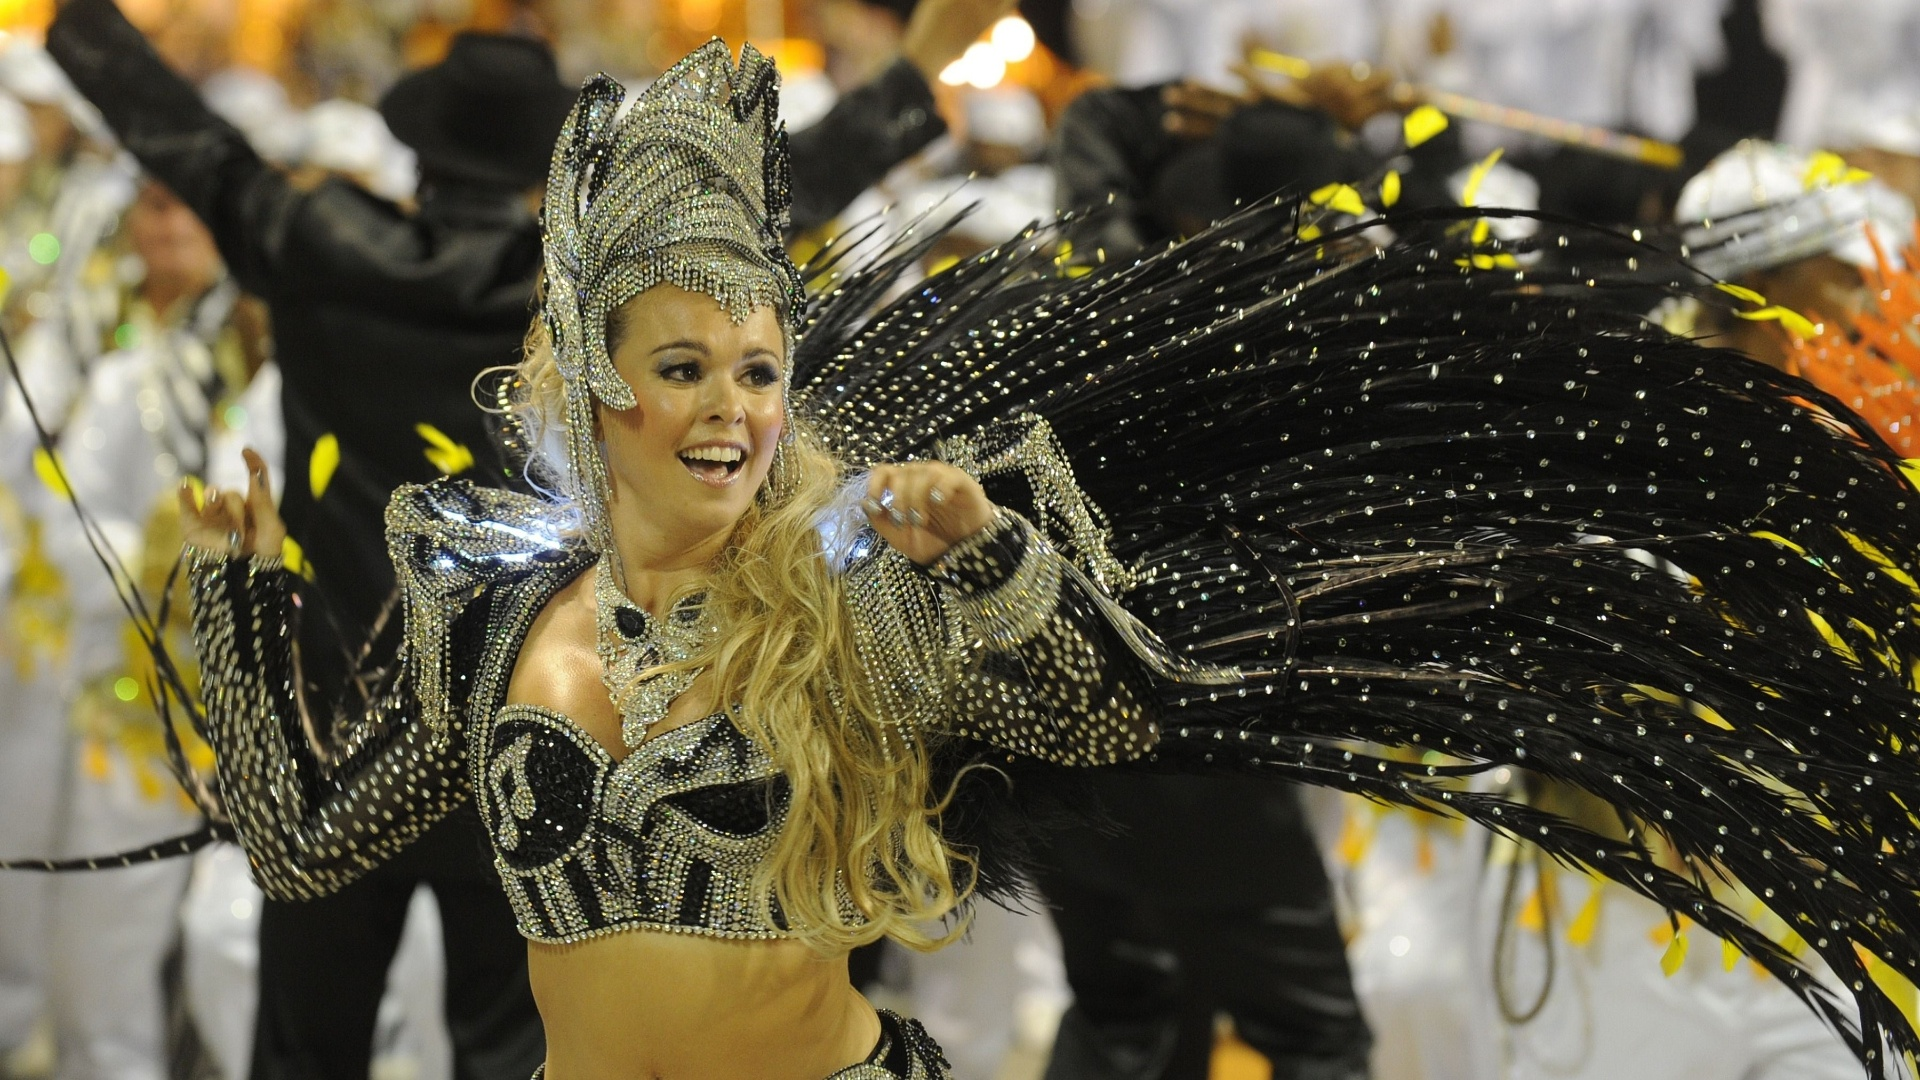 Bruna Almeida, rainha de bateria da So Clemente samba em desfile na Marqus de Sapuca, no Rio (20/2/12)